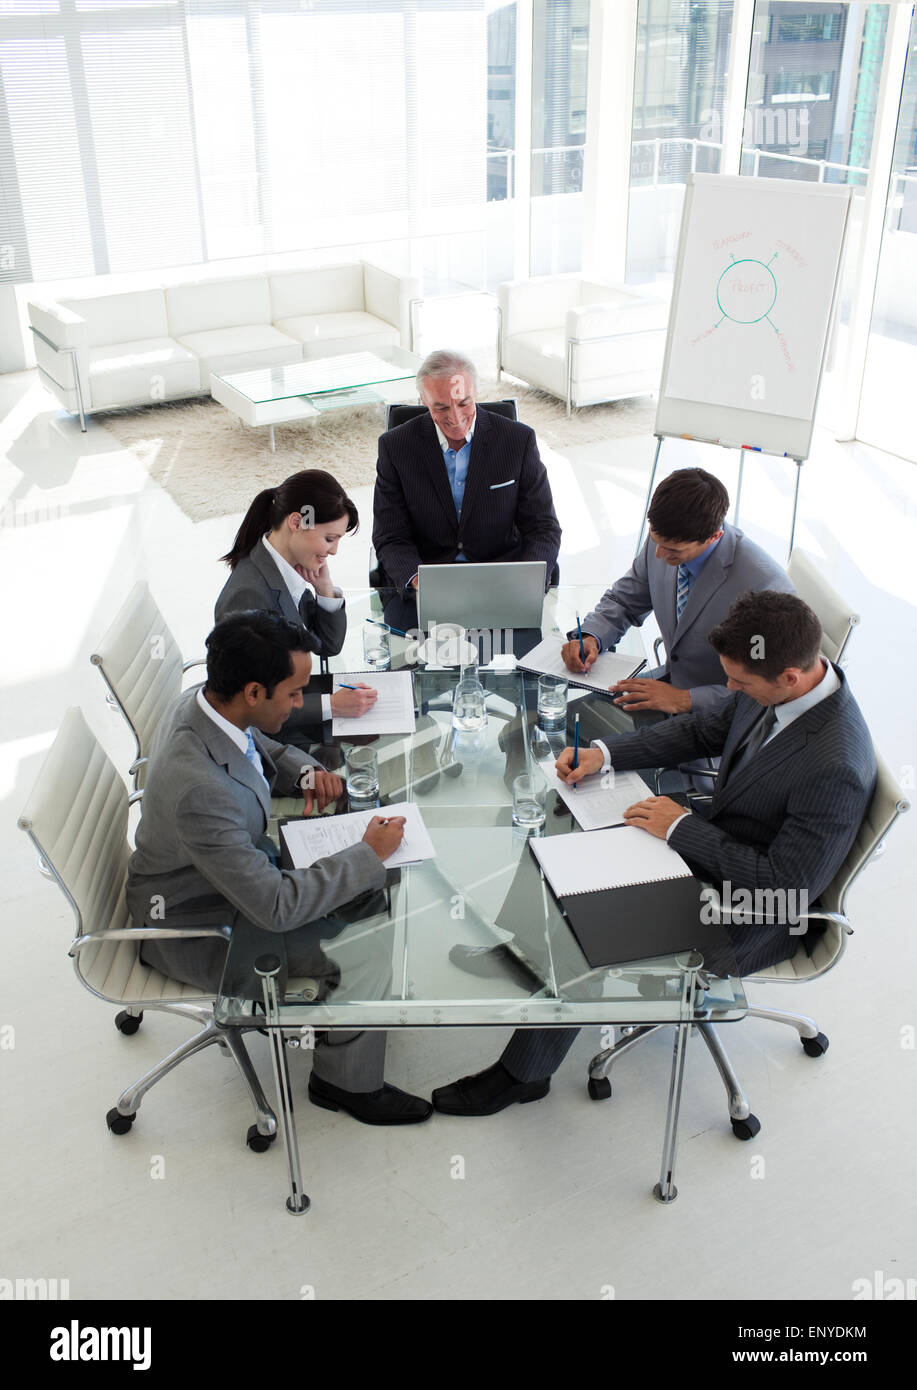 Multi-ethnic business team working together - Stock Image